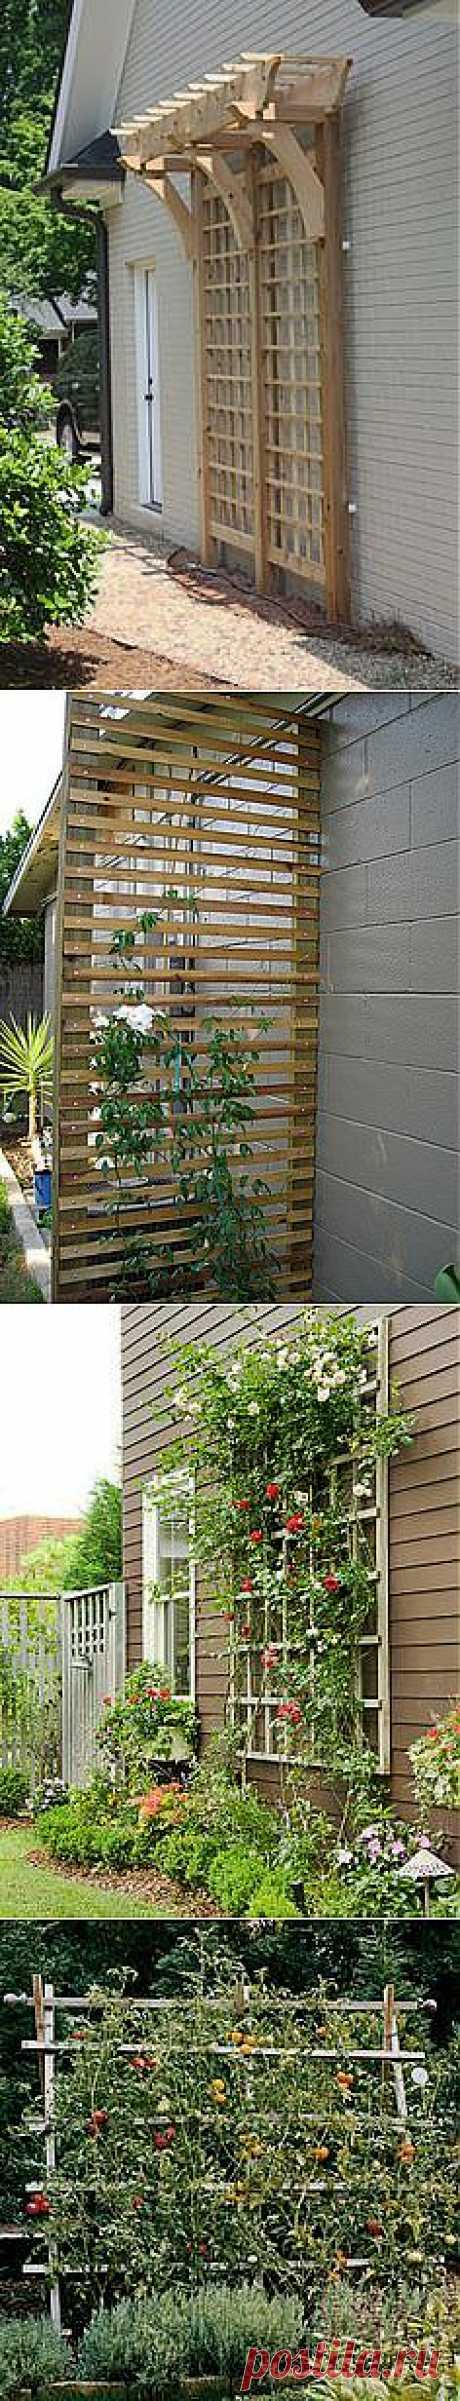 trellis | The Great Outdoors